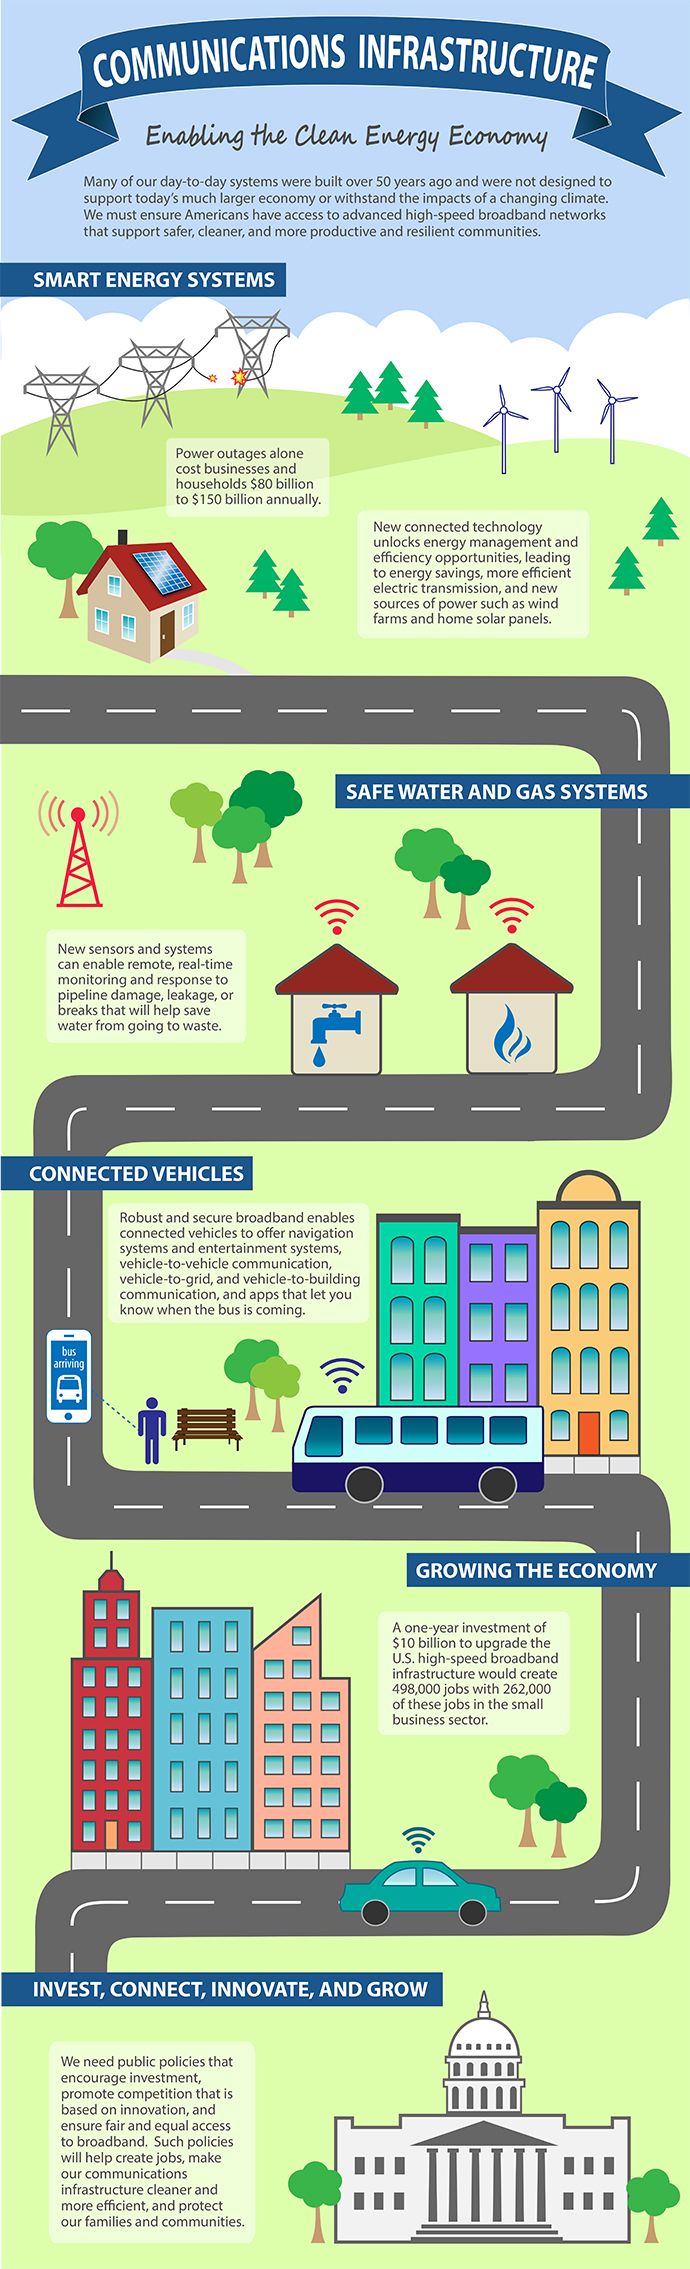 Communications Infrastructure - BlueGreen Alliance Infographic